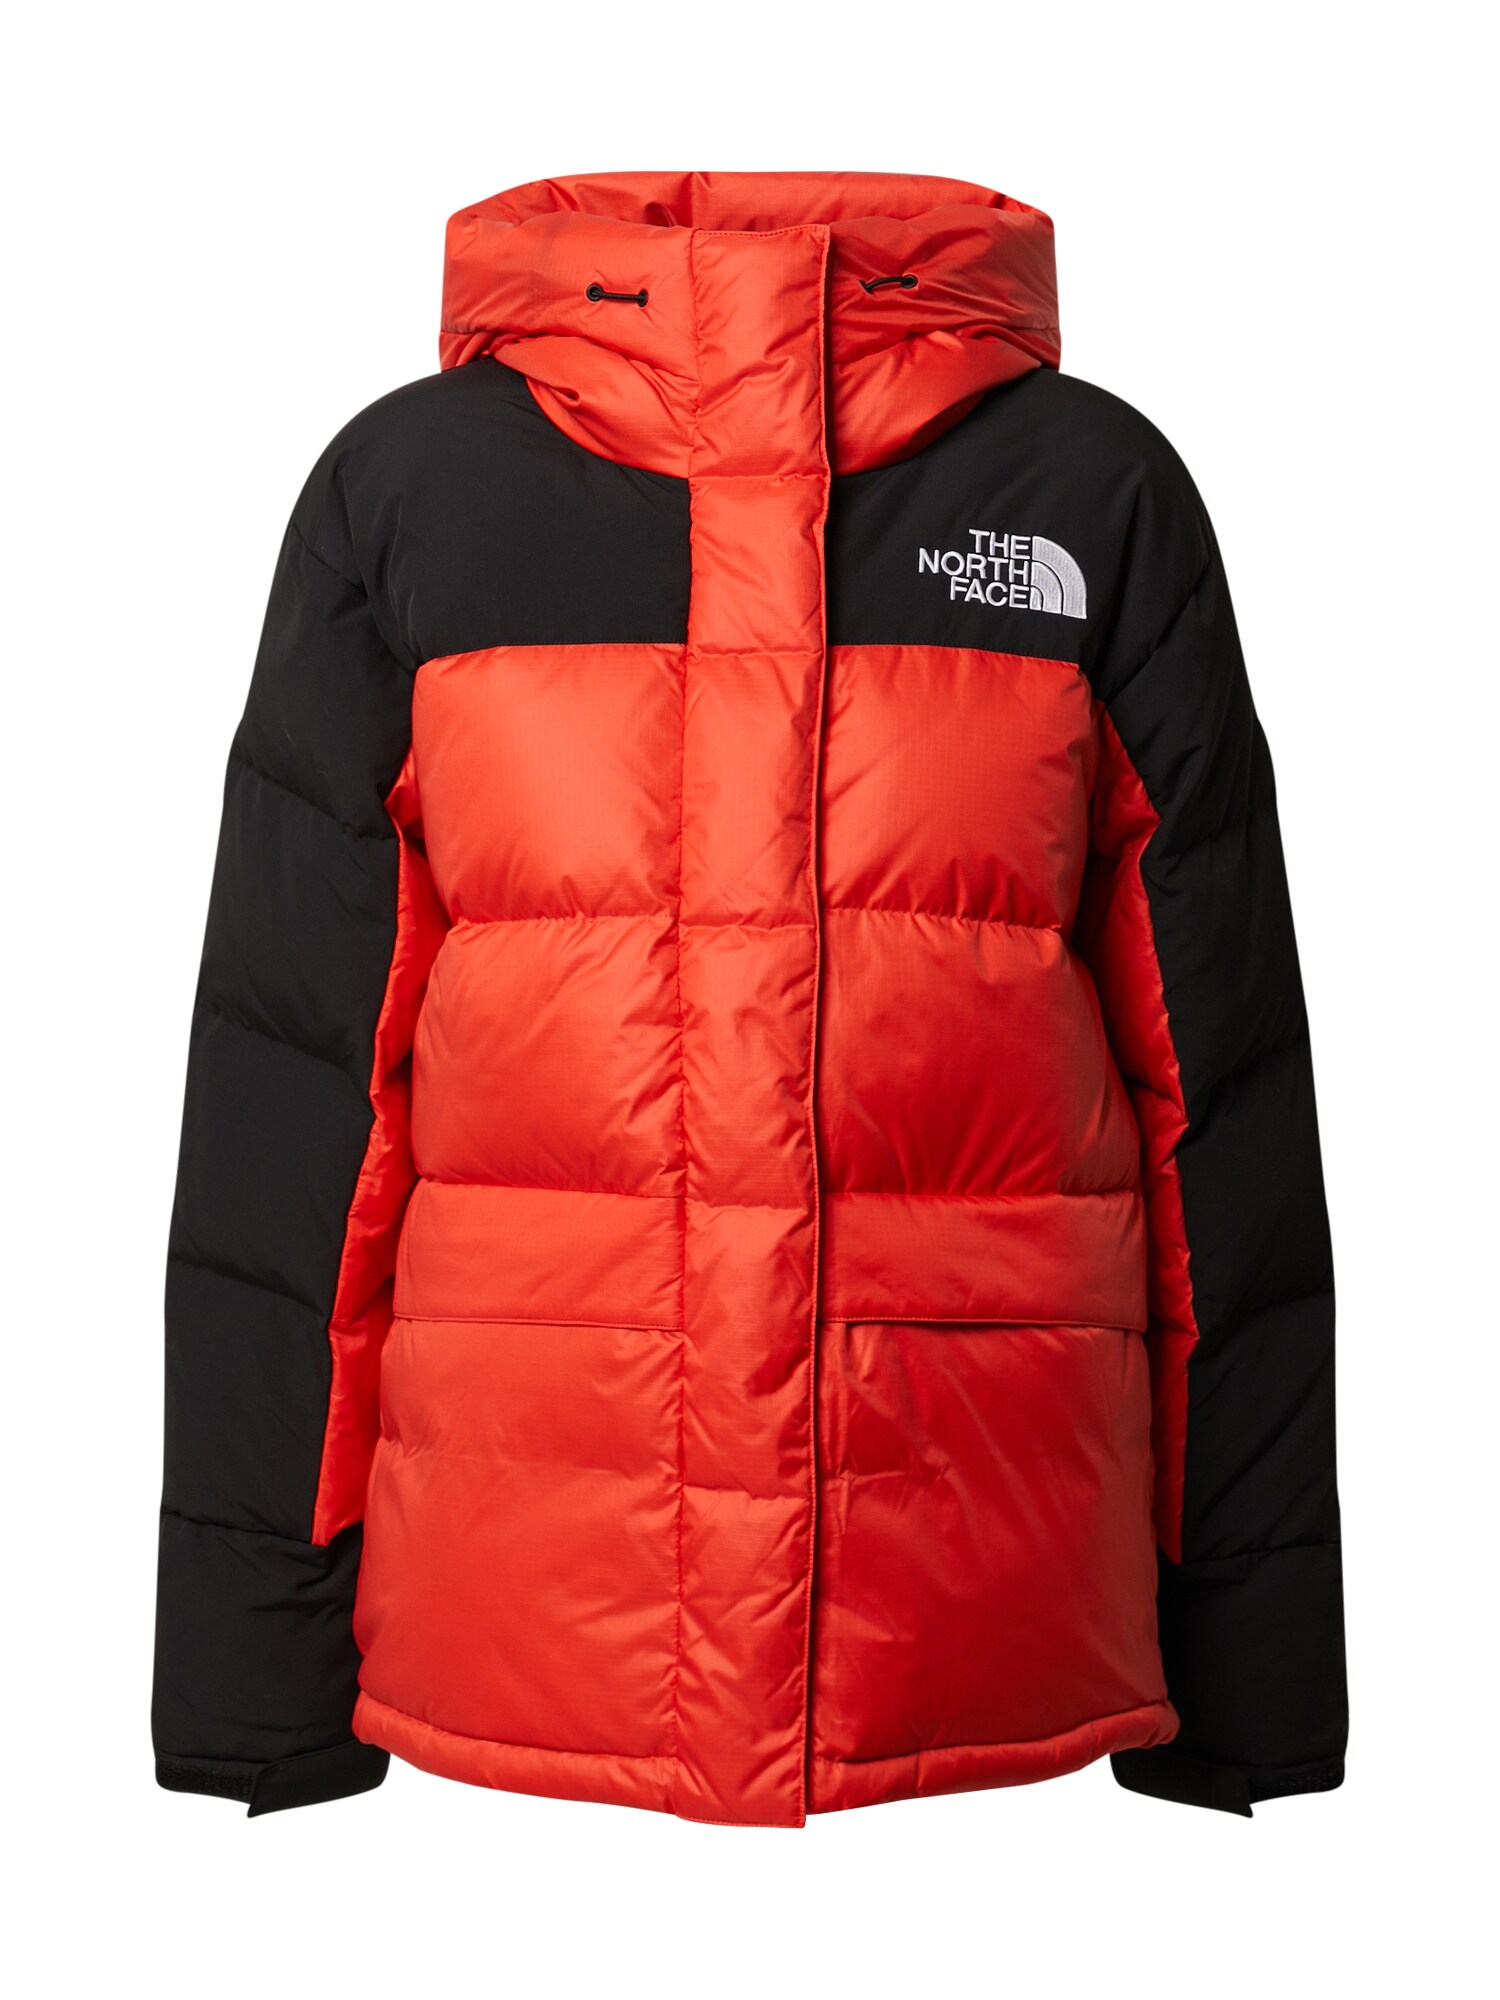 THE NORTH FACE Outdoorová bunda HMLYN DOWN PARKA černá korálová The North Face